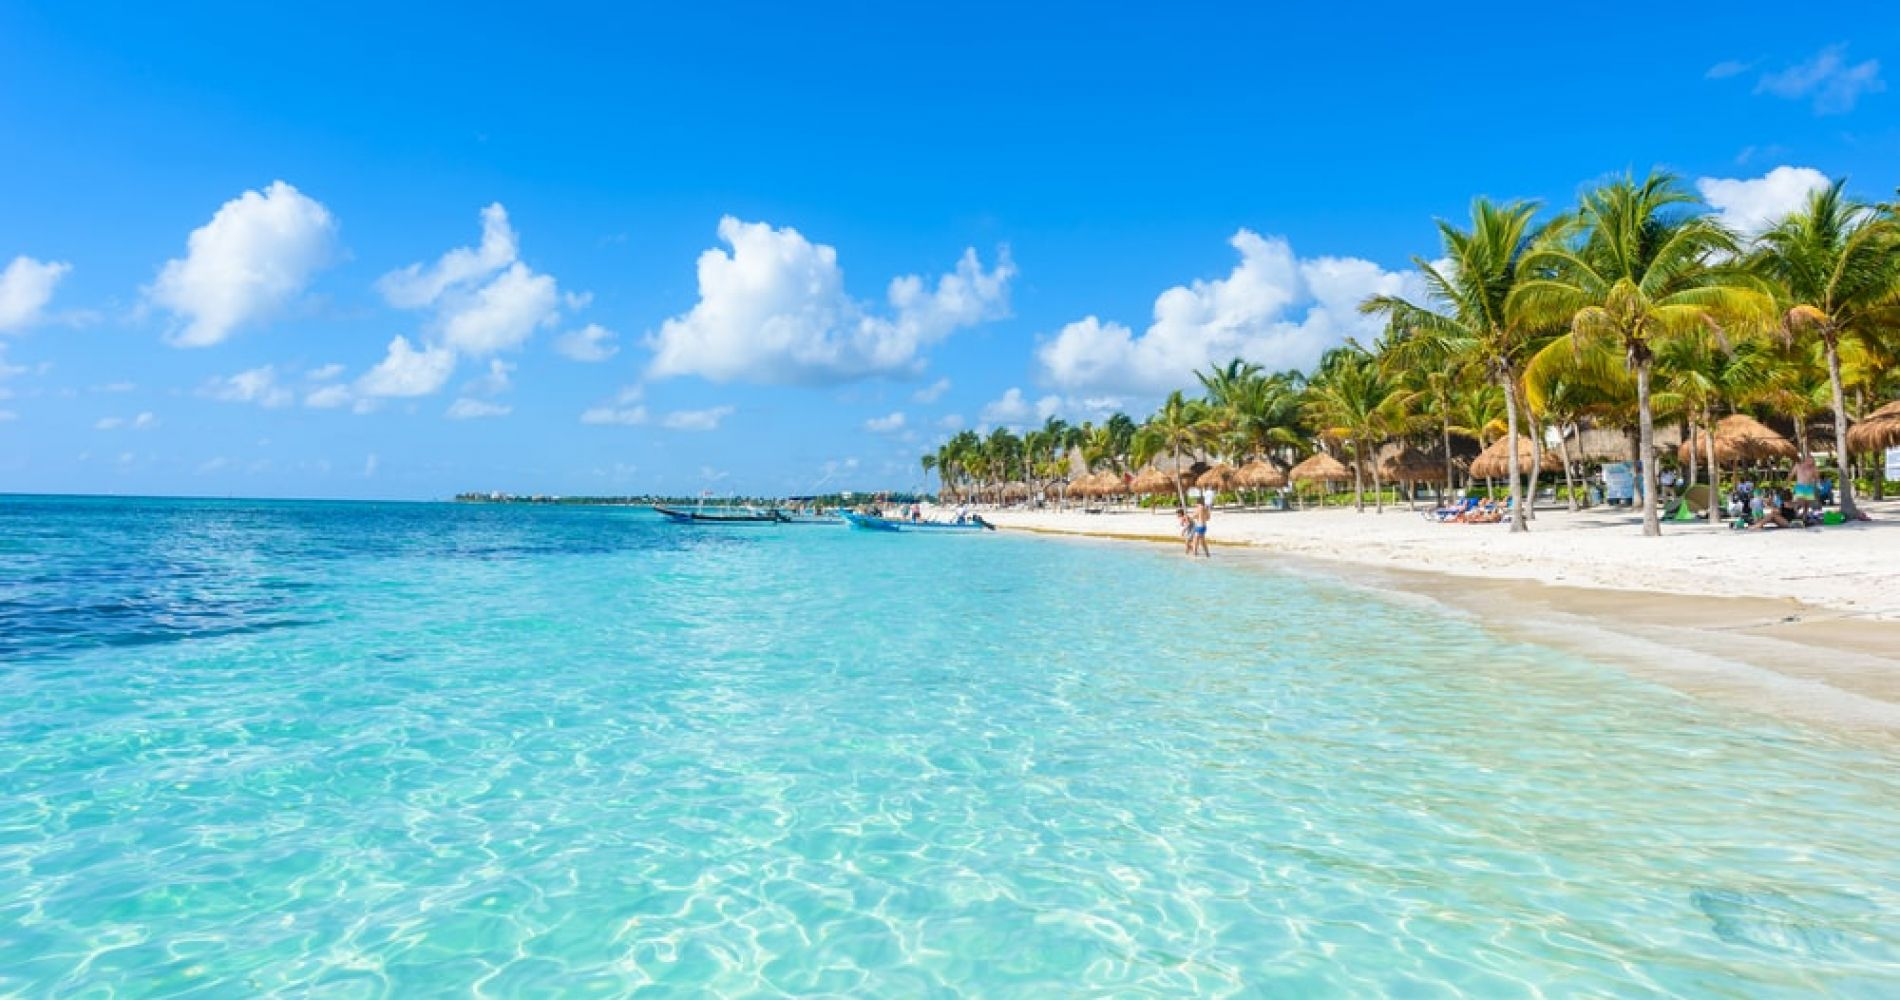 Visit the Famous Mexican Beaches while in Cancun